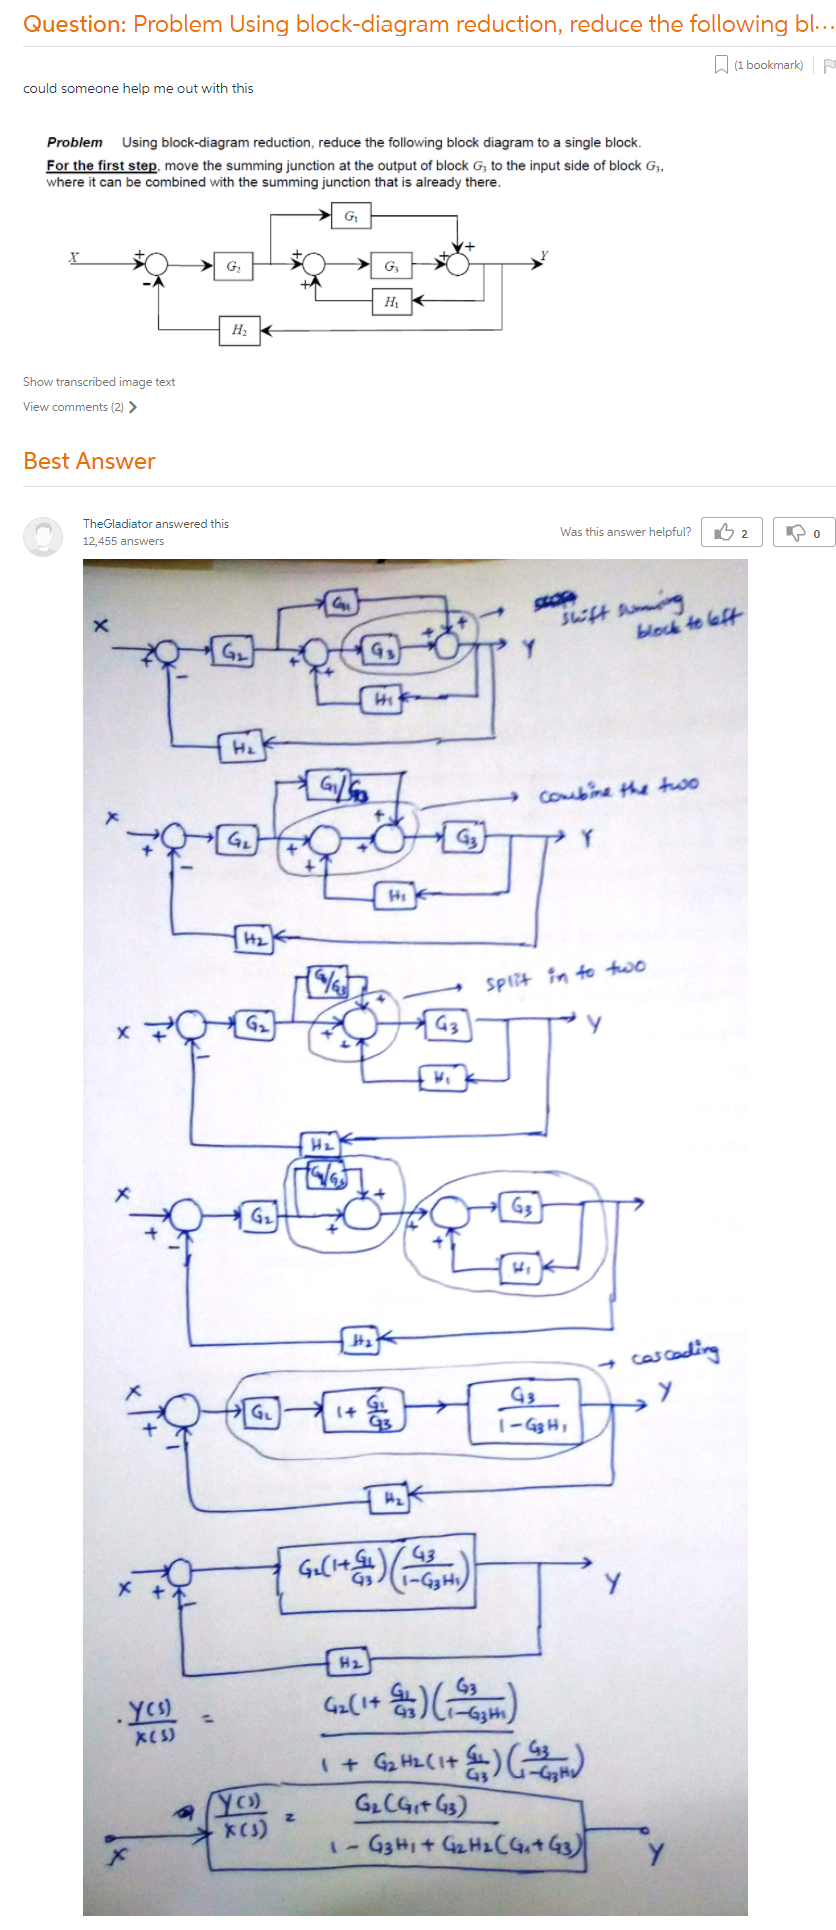 Problem Using Block-diagram Reduction, Reduce The Following Block Diagram  To A Single Block. For The First Step, Move The Summing Junction At The  Output Of Block G3 To The Input Side Of Block G3, Where It Can Be Combined  With The Summing Junction That Is Already There.